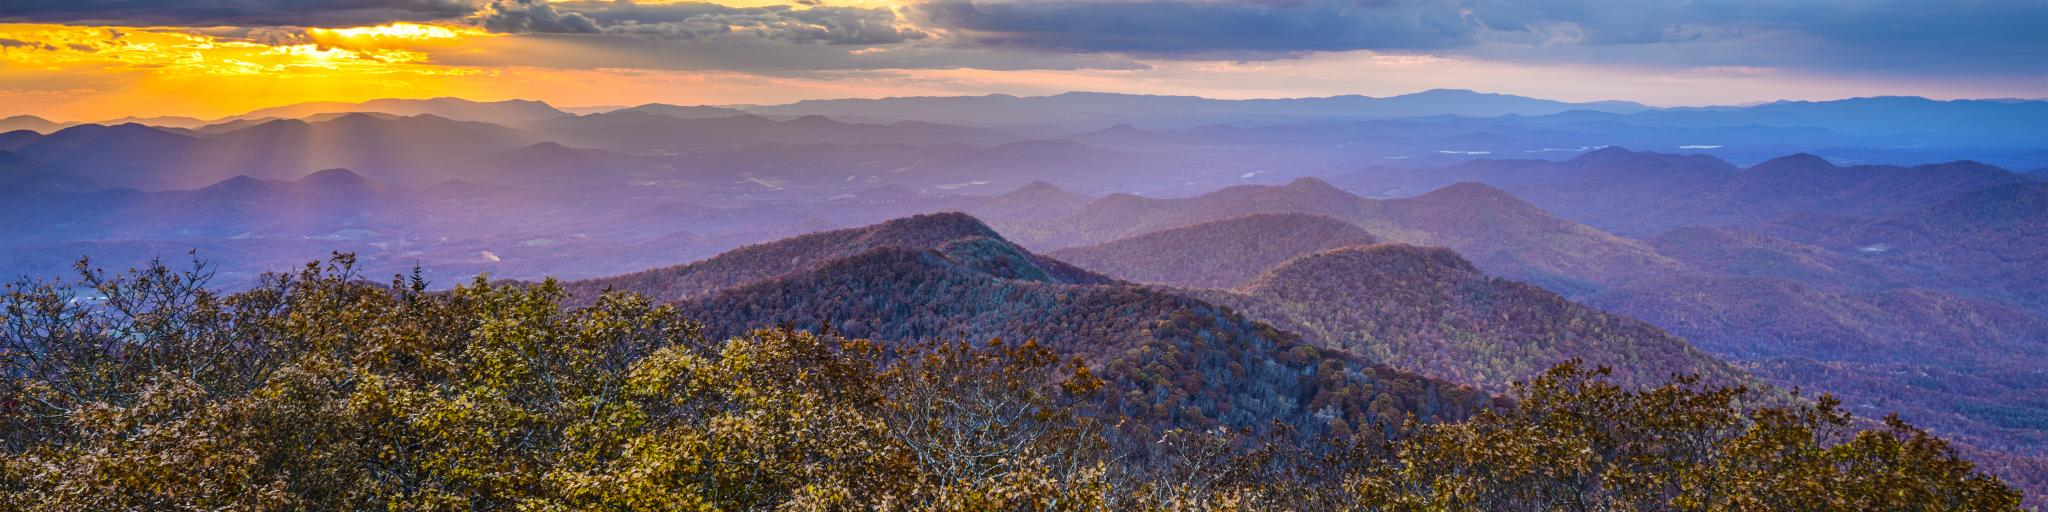 Blue Ridge Mountains in North Georgia, USA in the autumn season